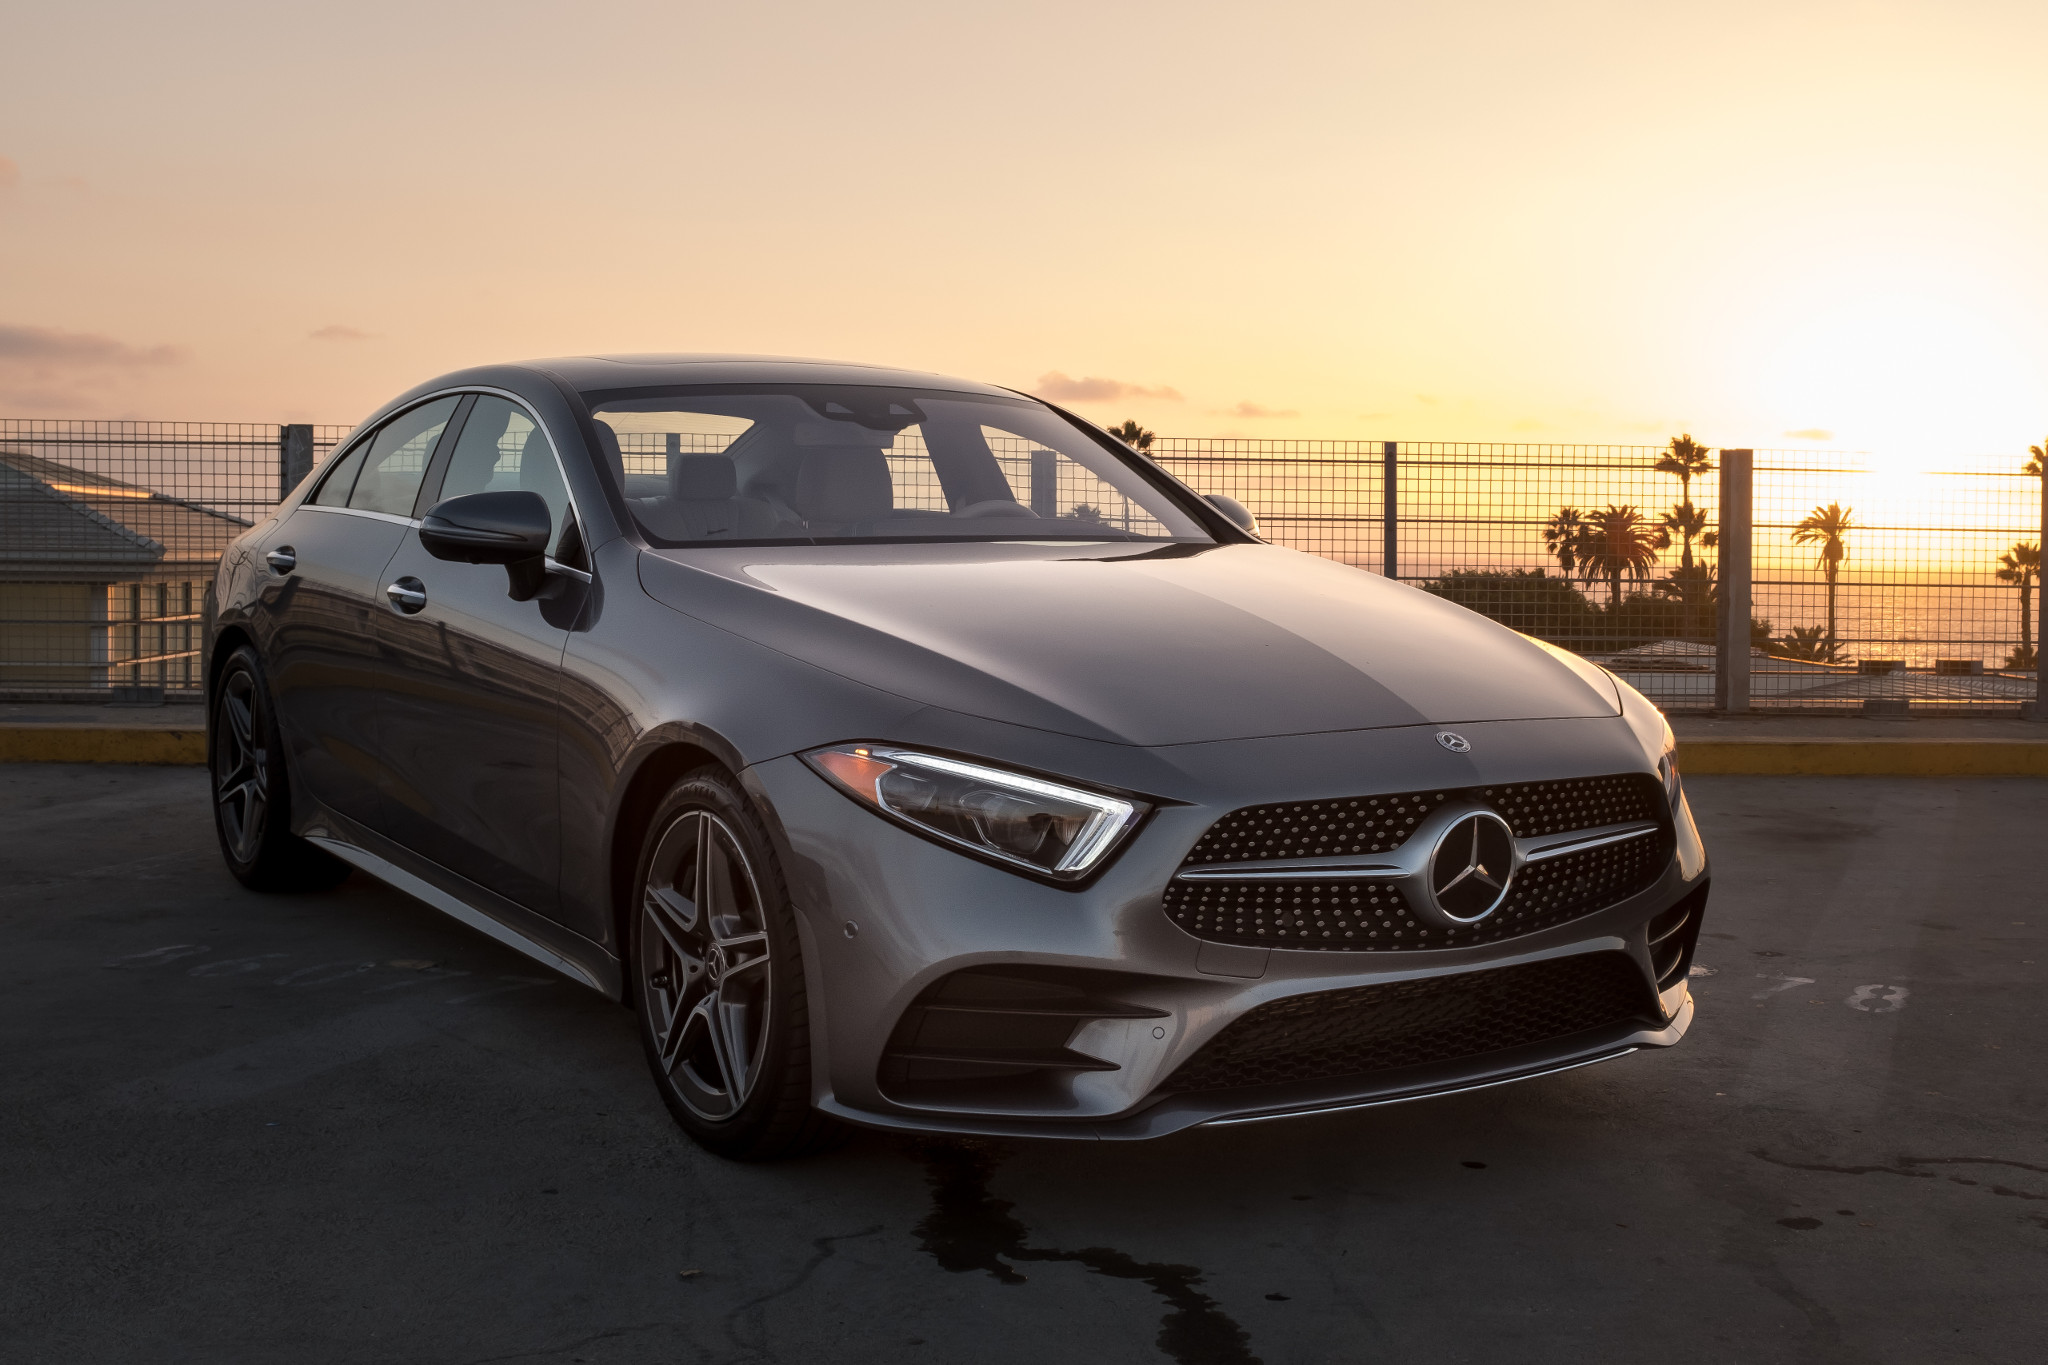 2019 Mercedes-Benz CLS450 Review: Restrained Luxury